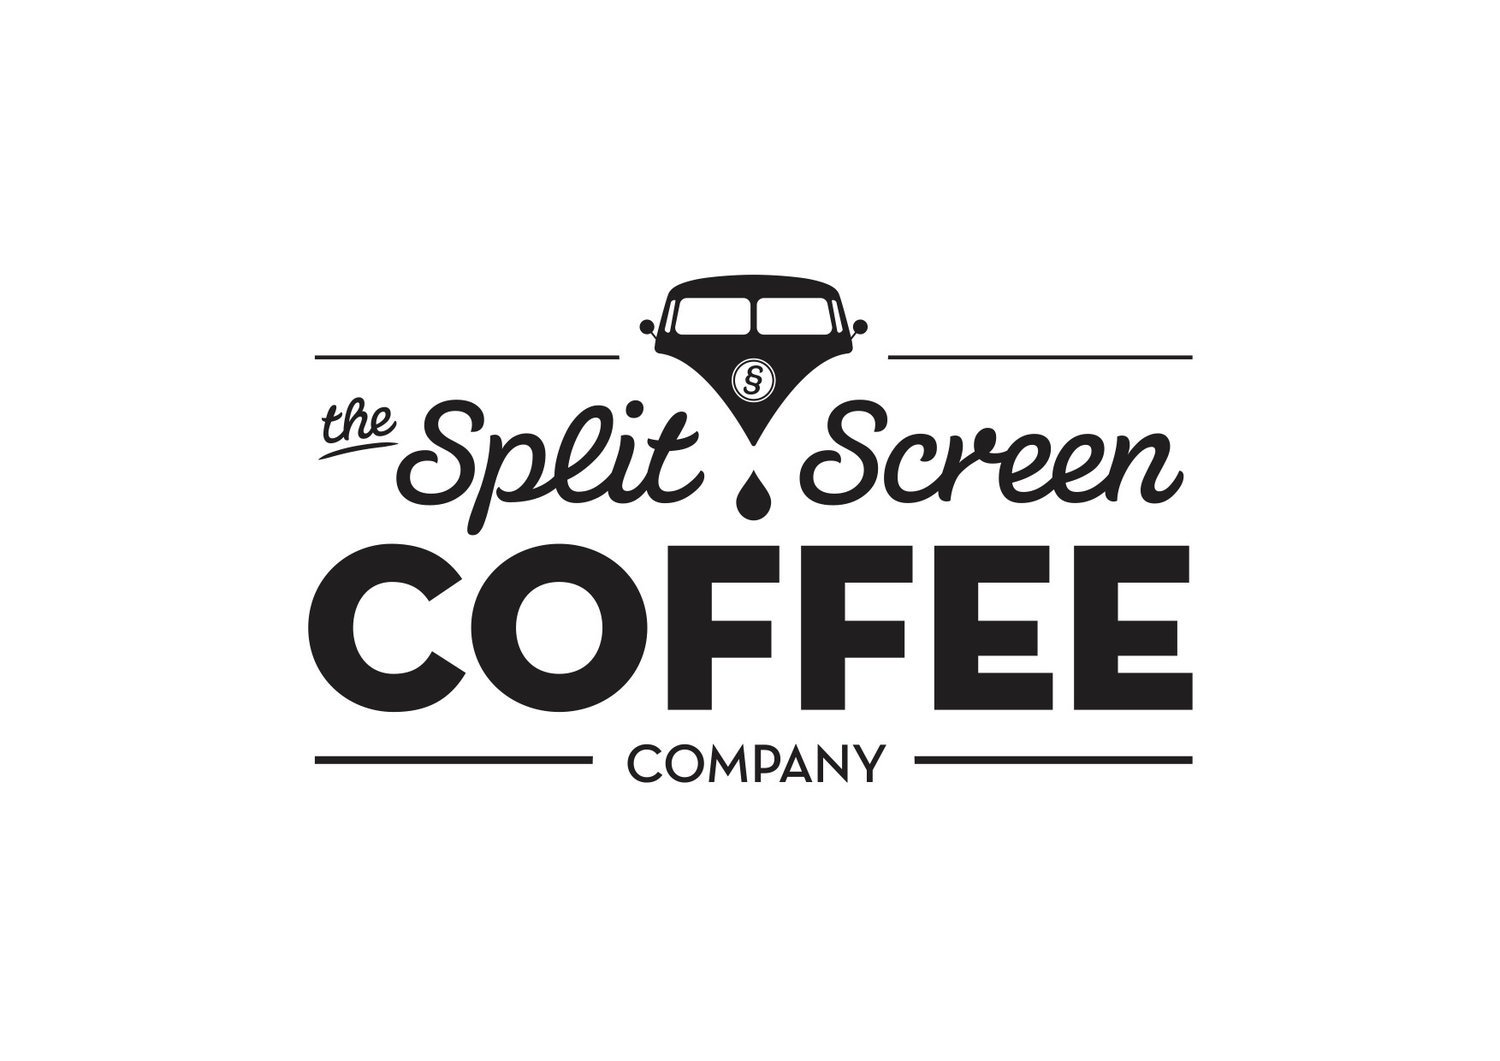 The Split Screen Coffee Company